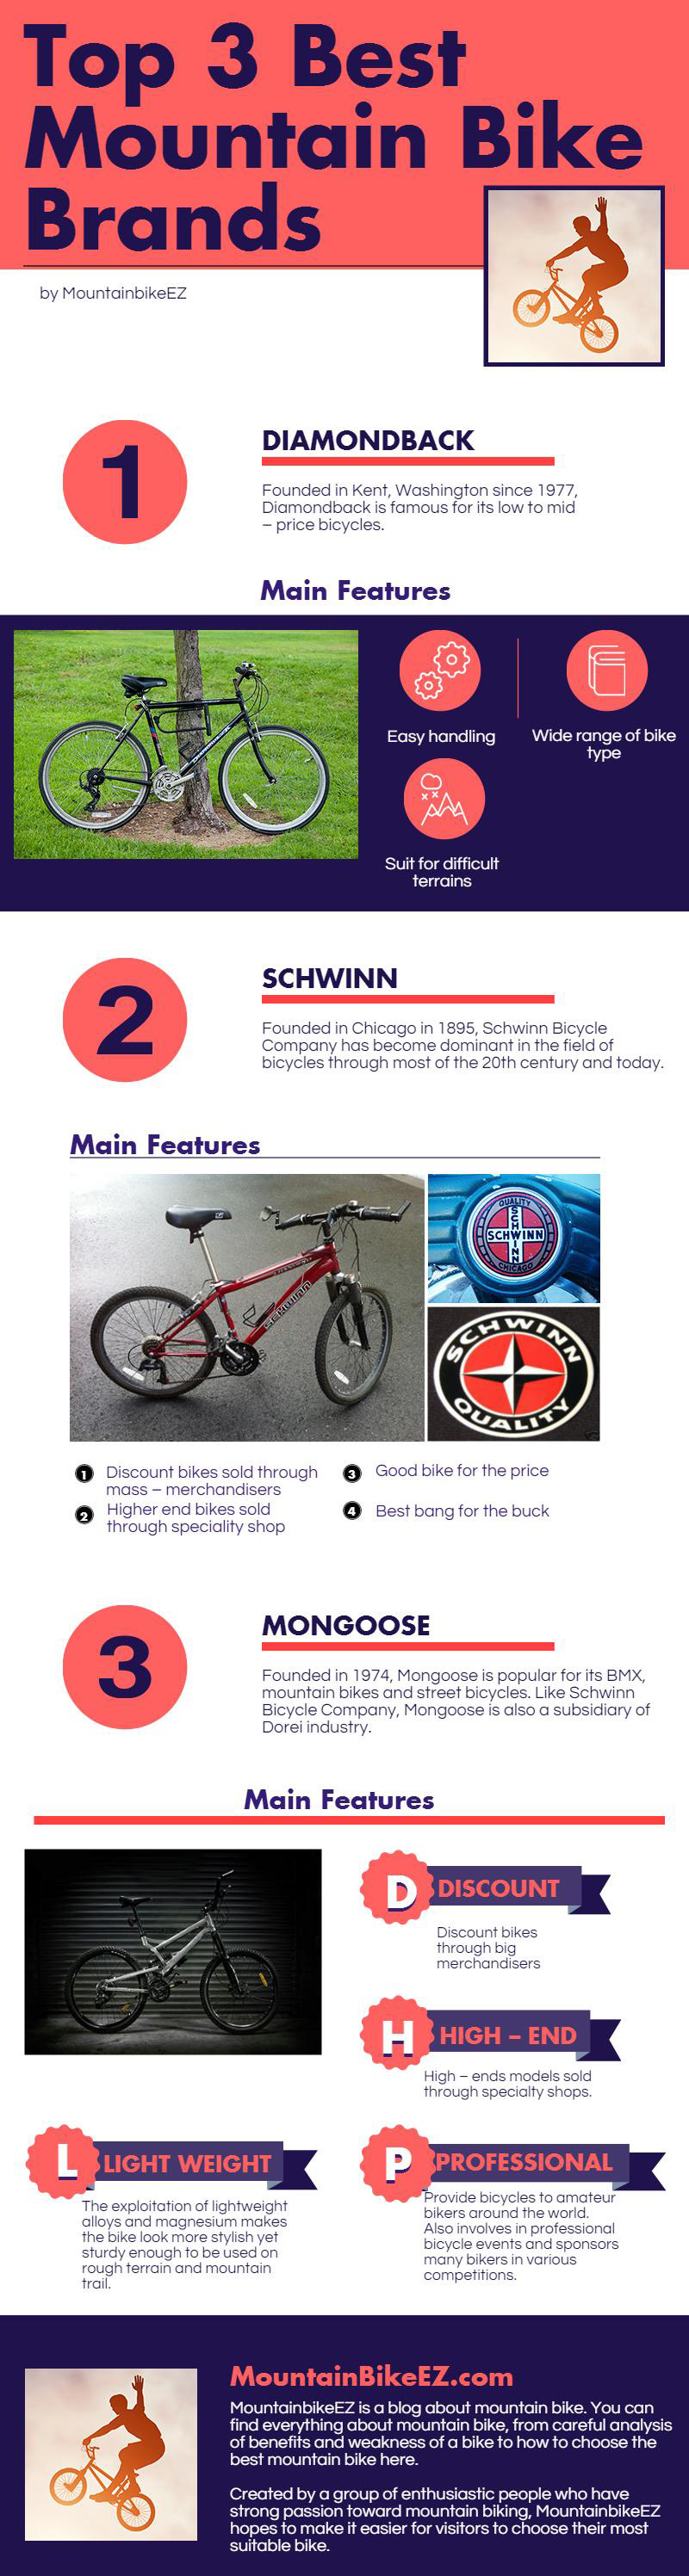 Top 3 Best Mountain Bike Brands infographic